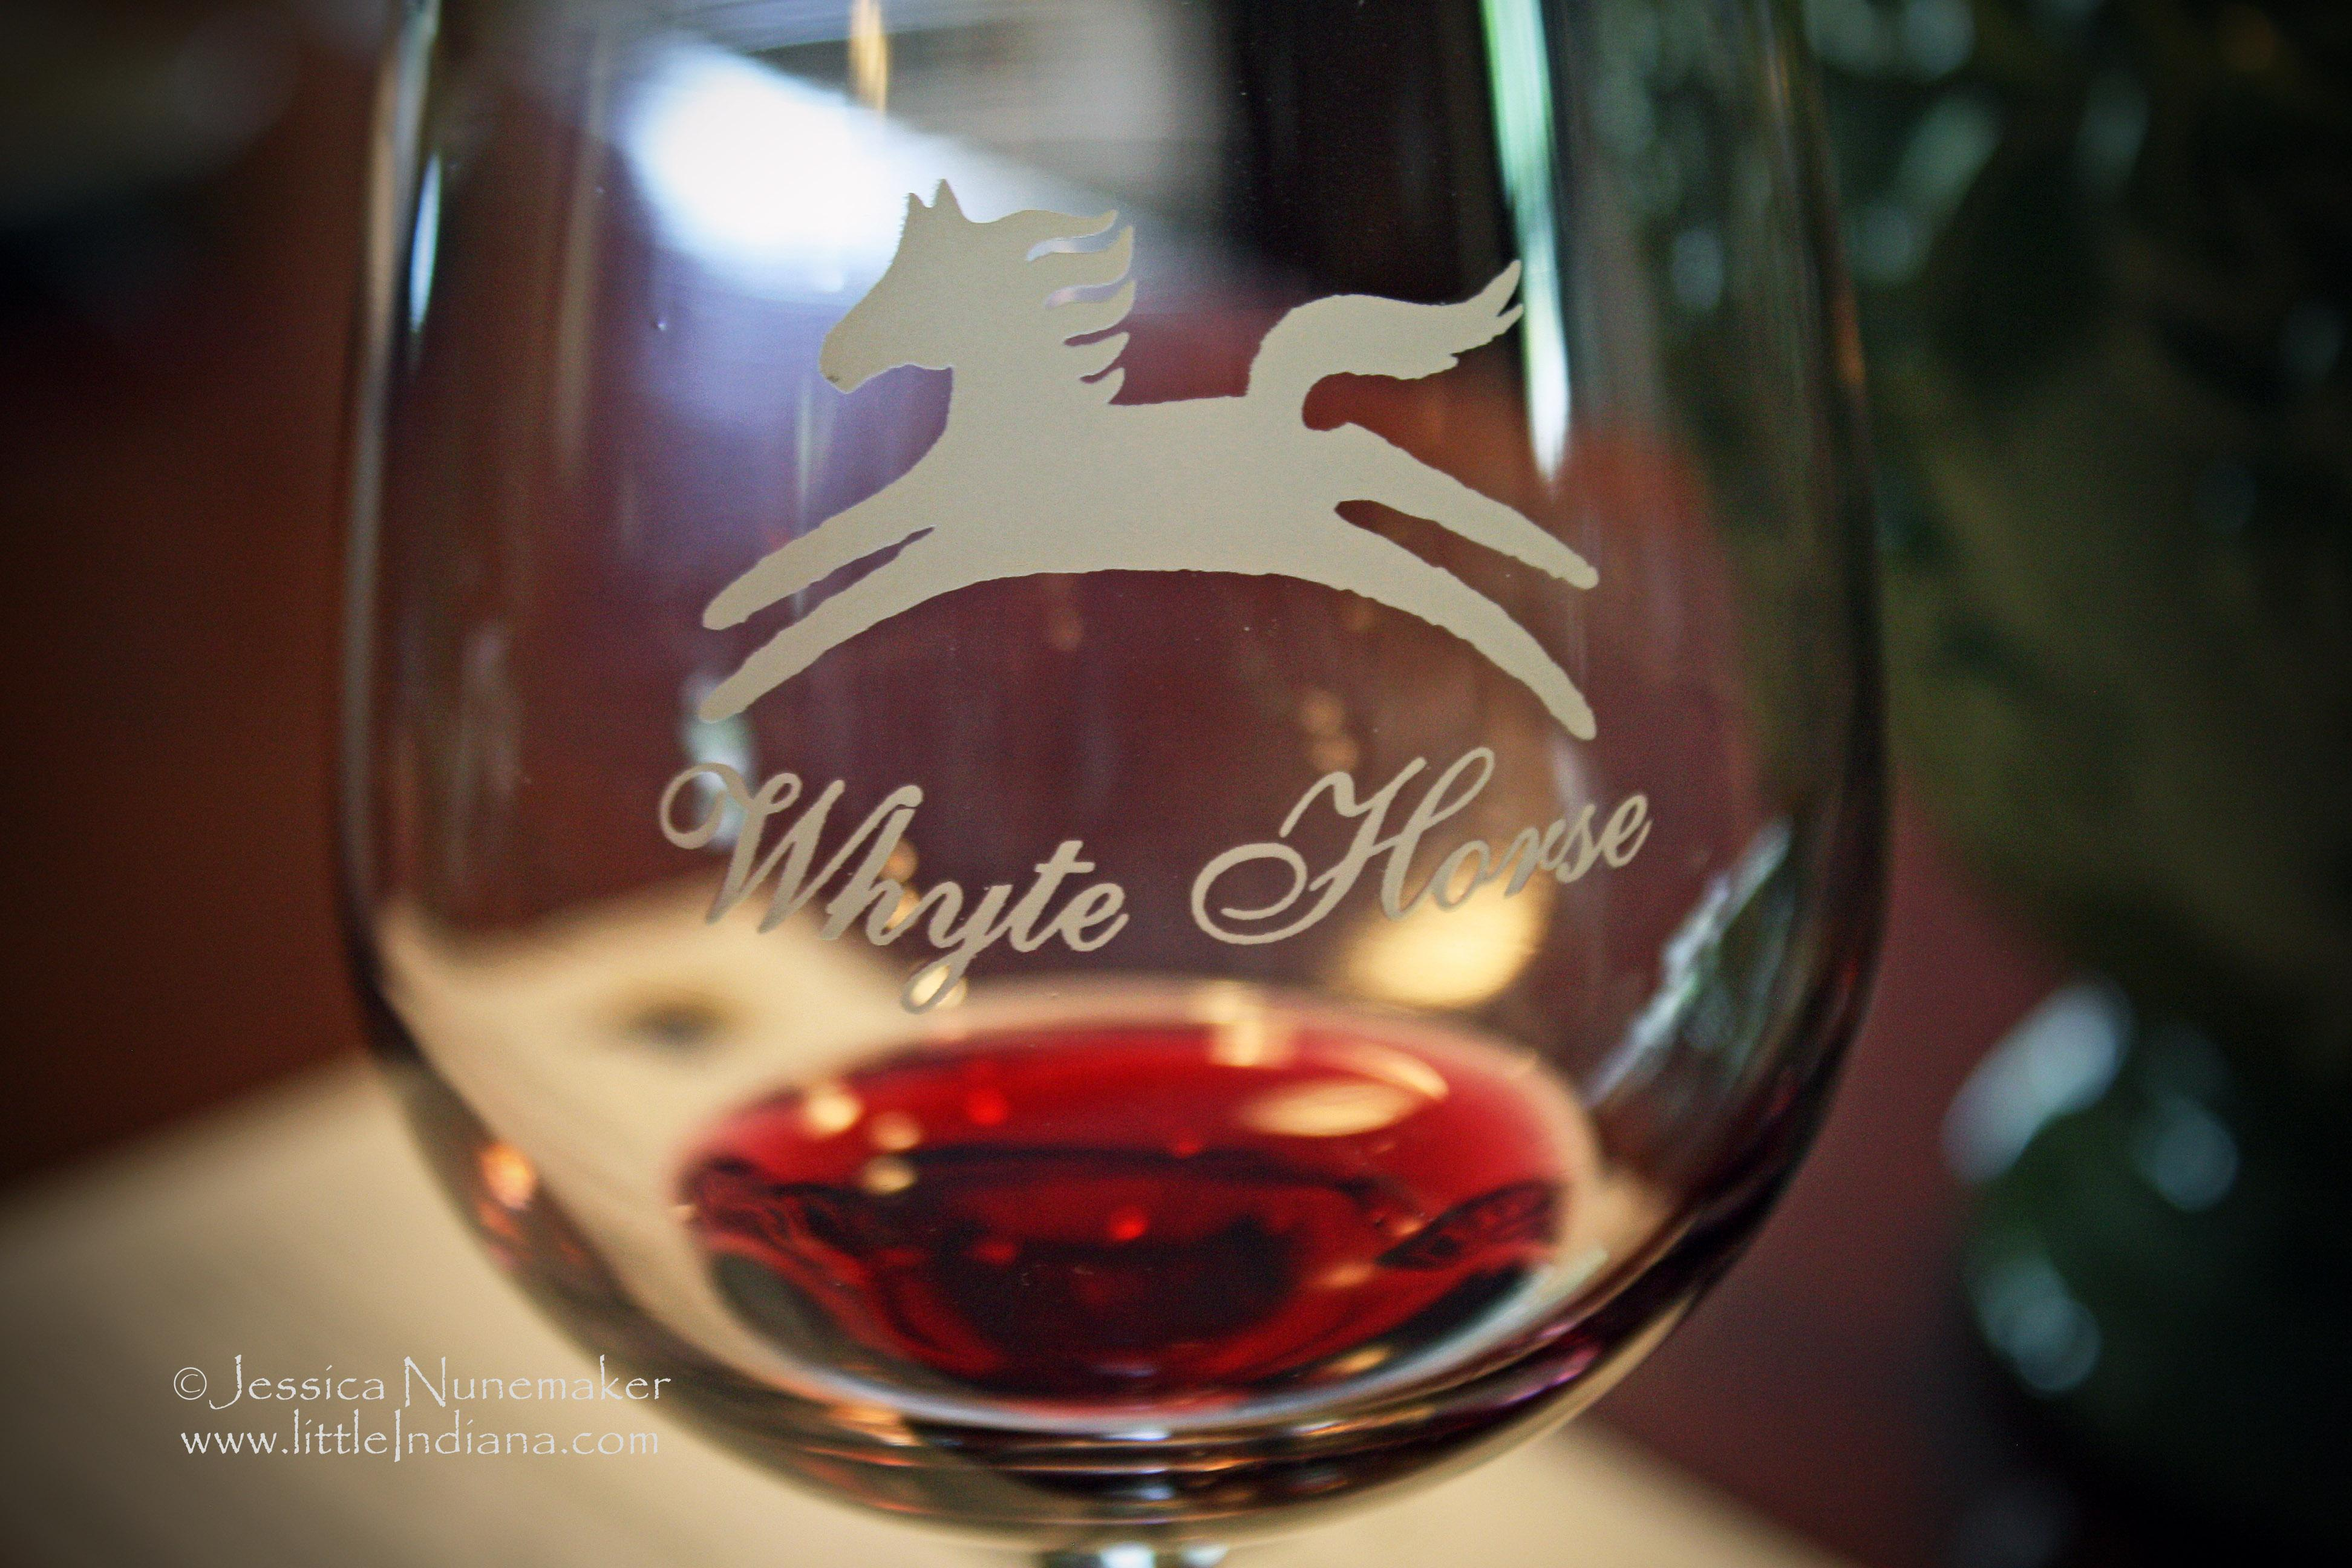 Whyte Horse Winery: Monticello, Indiana